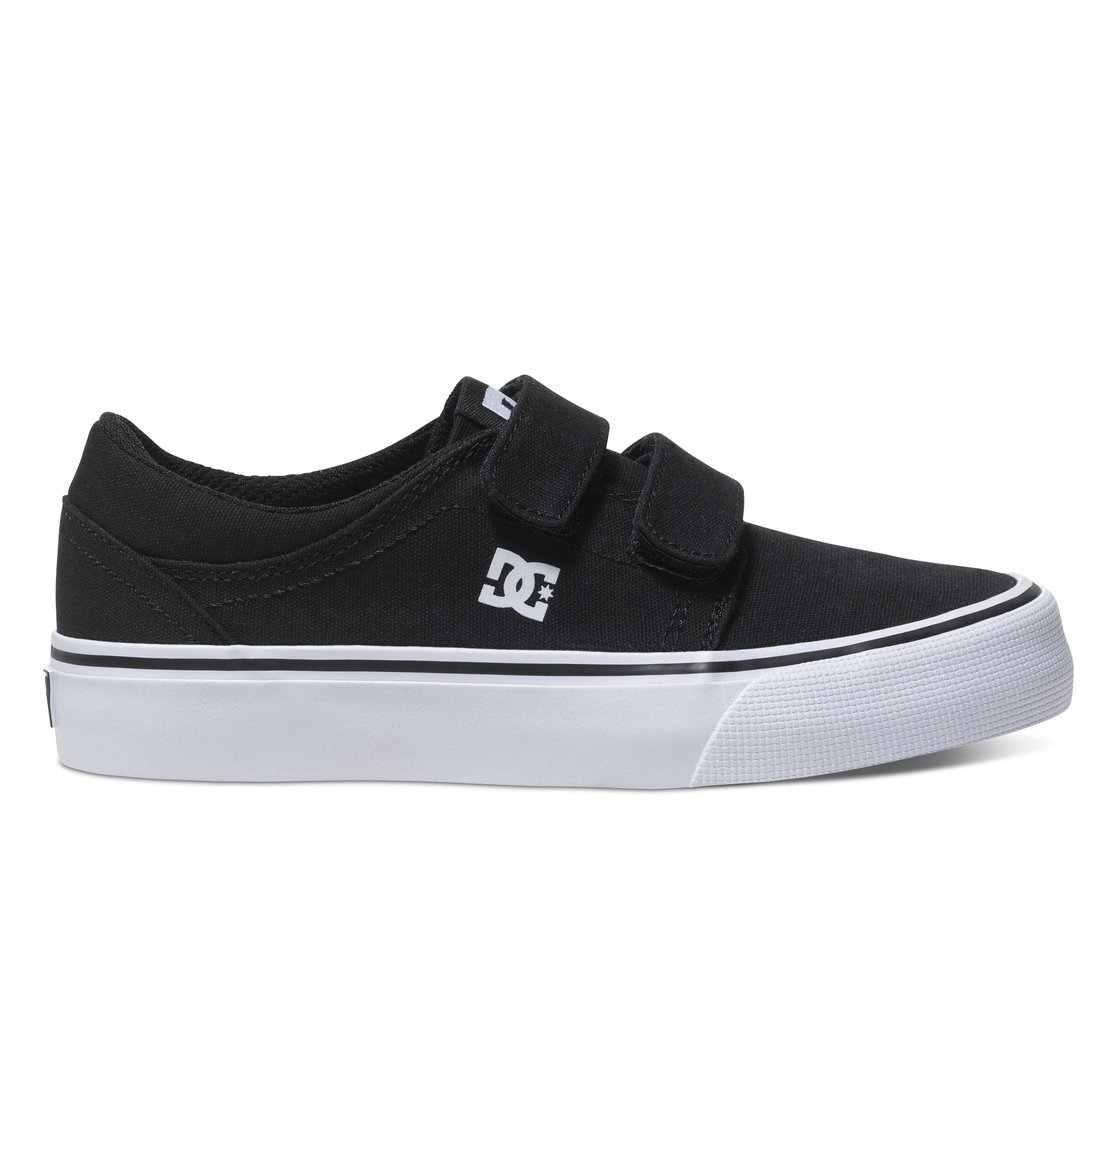 Trase V - Low-Top Shoes от DC Shoes